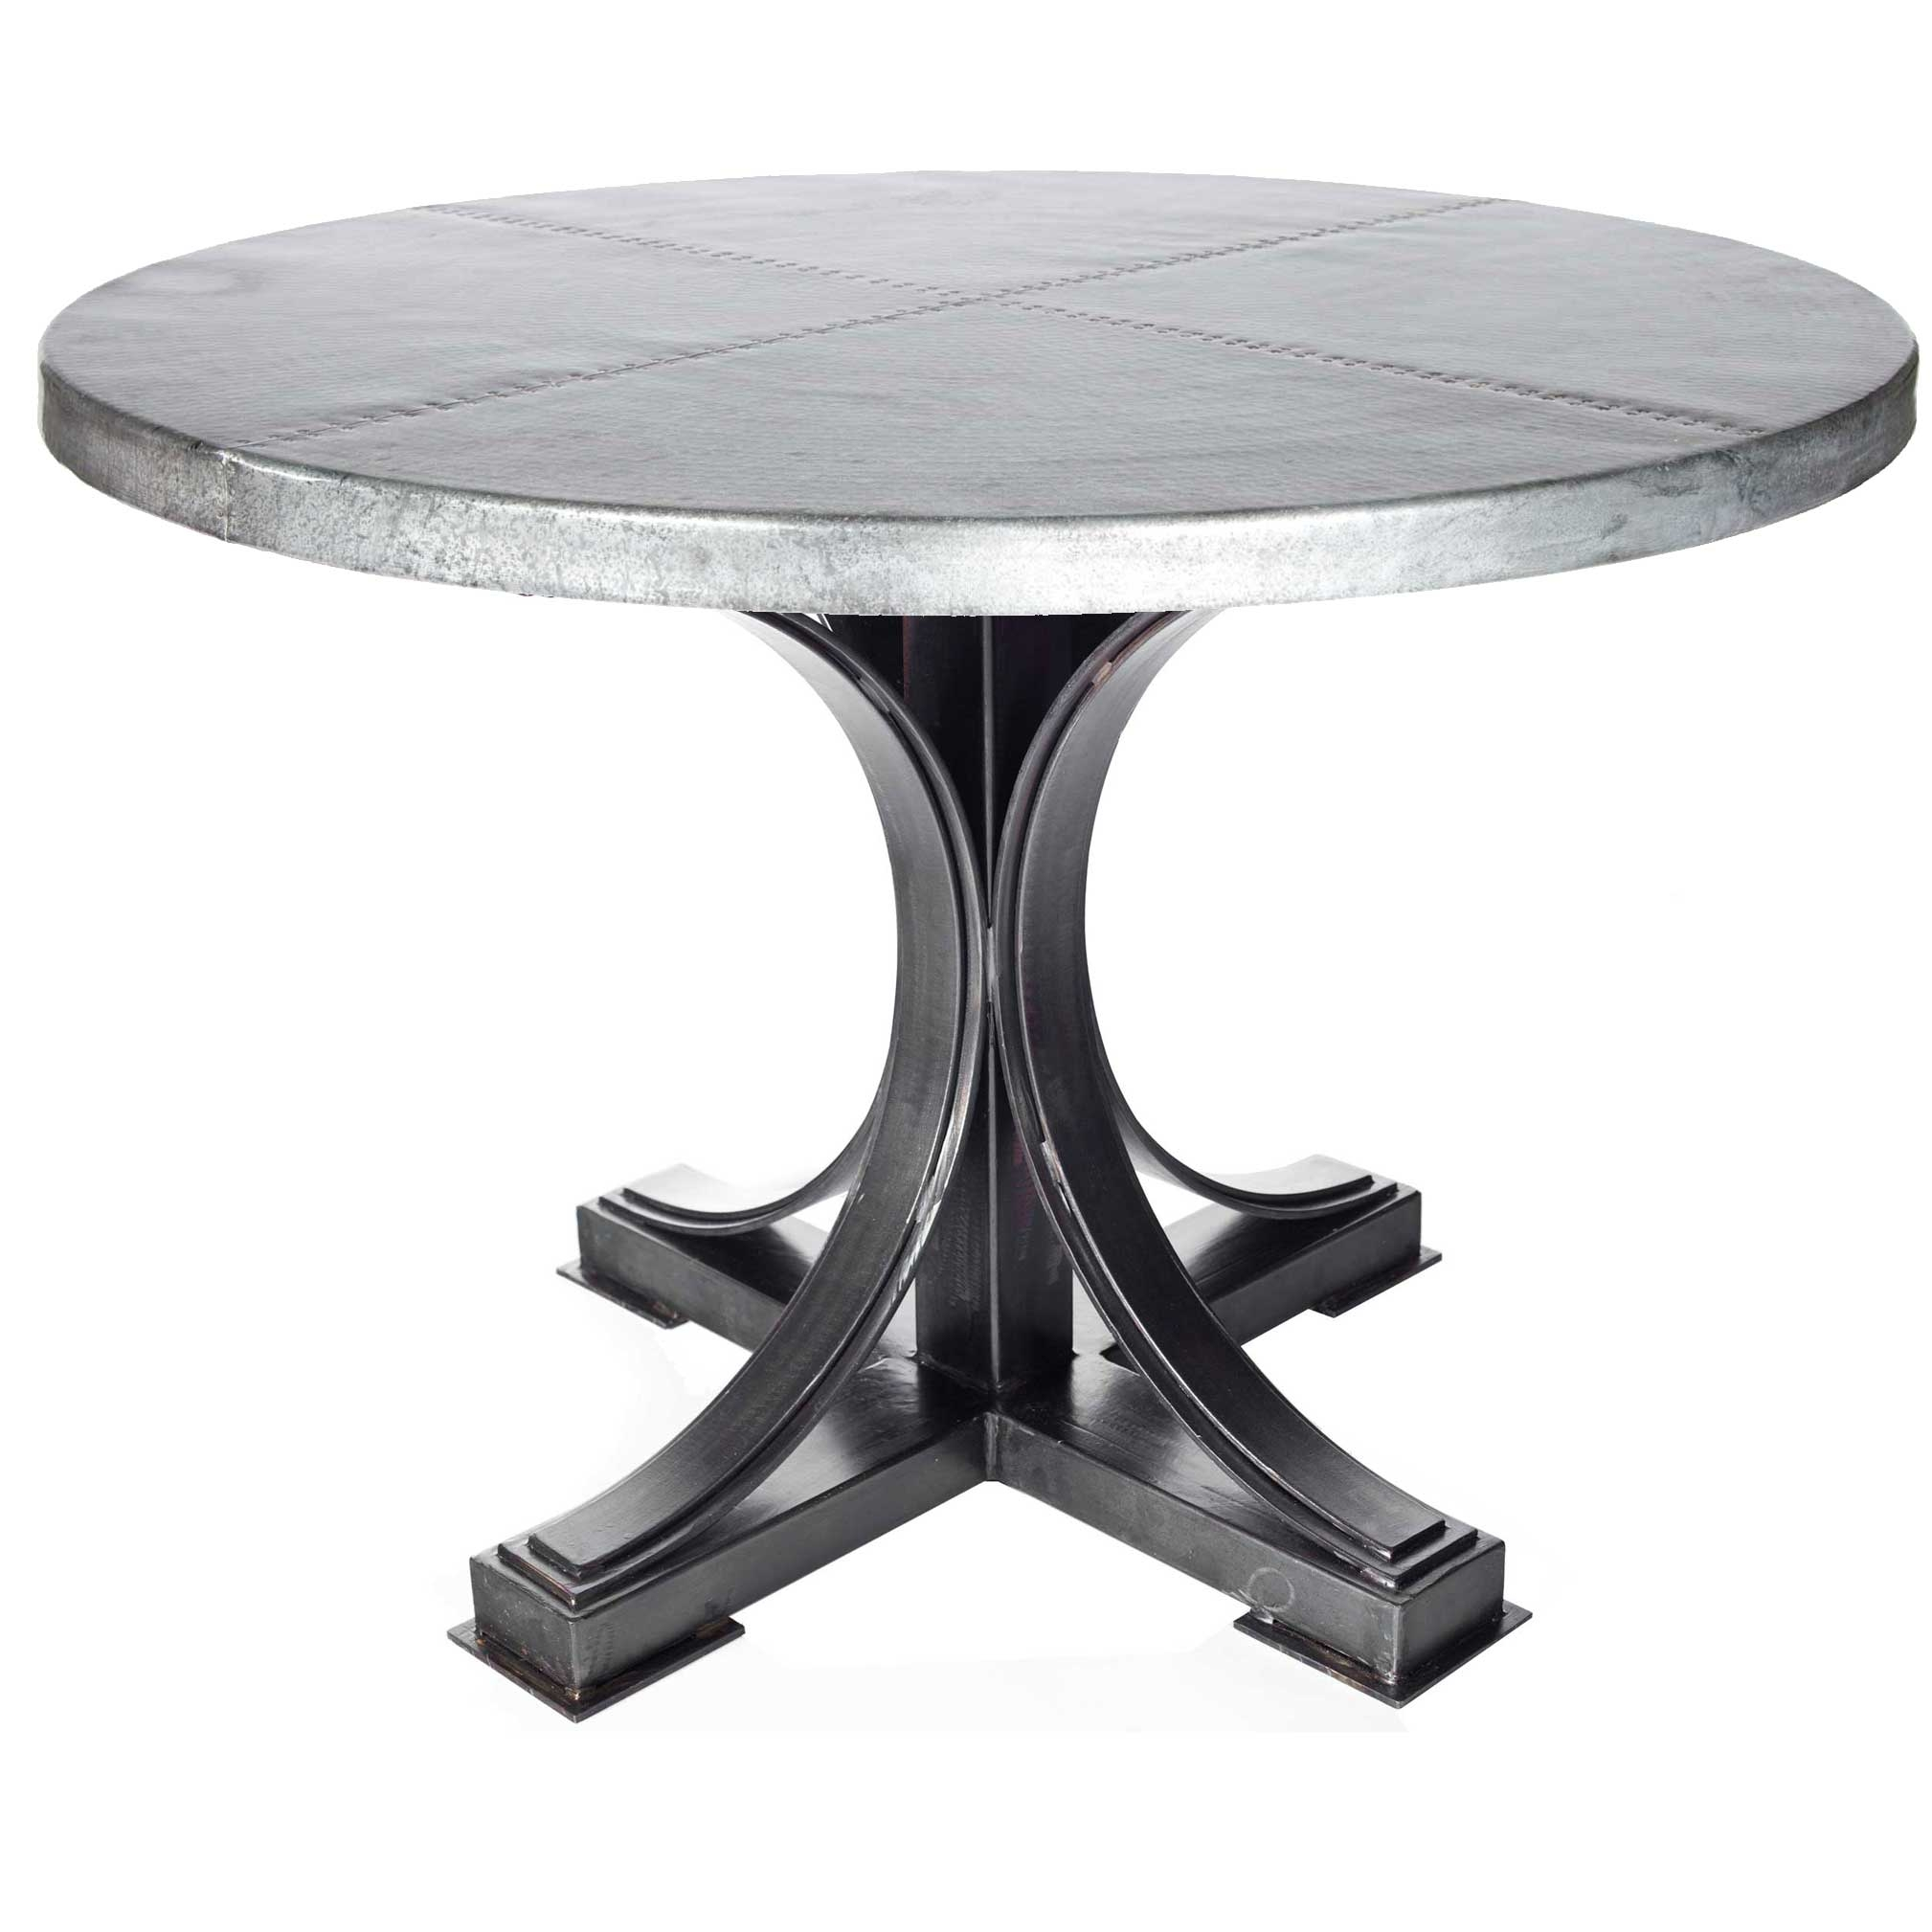 winston iron dining table with round hammered zinc top twi accent larger set furniture target shoe rack fire pit and chairs grey marble storage cabinets bedroom astoria collection